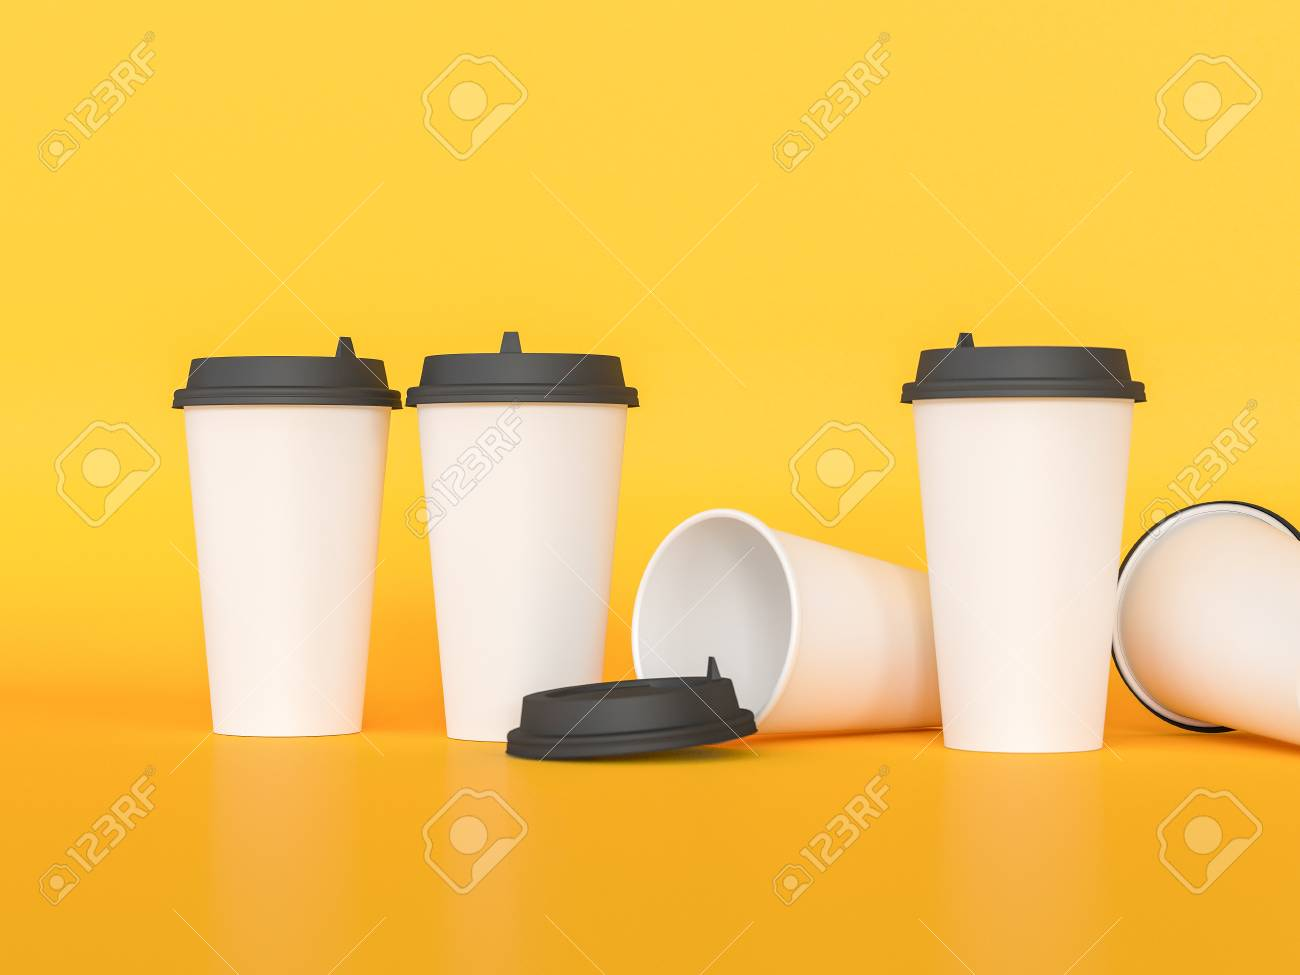 3d Model Of Paper Cups With A Lid Standing On A Plane Under Natural